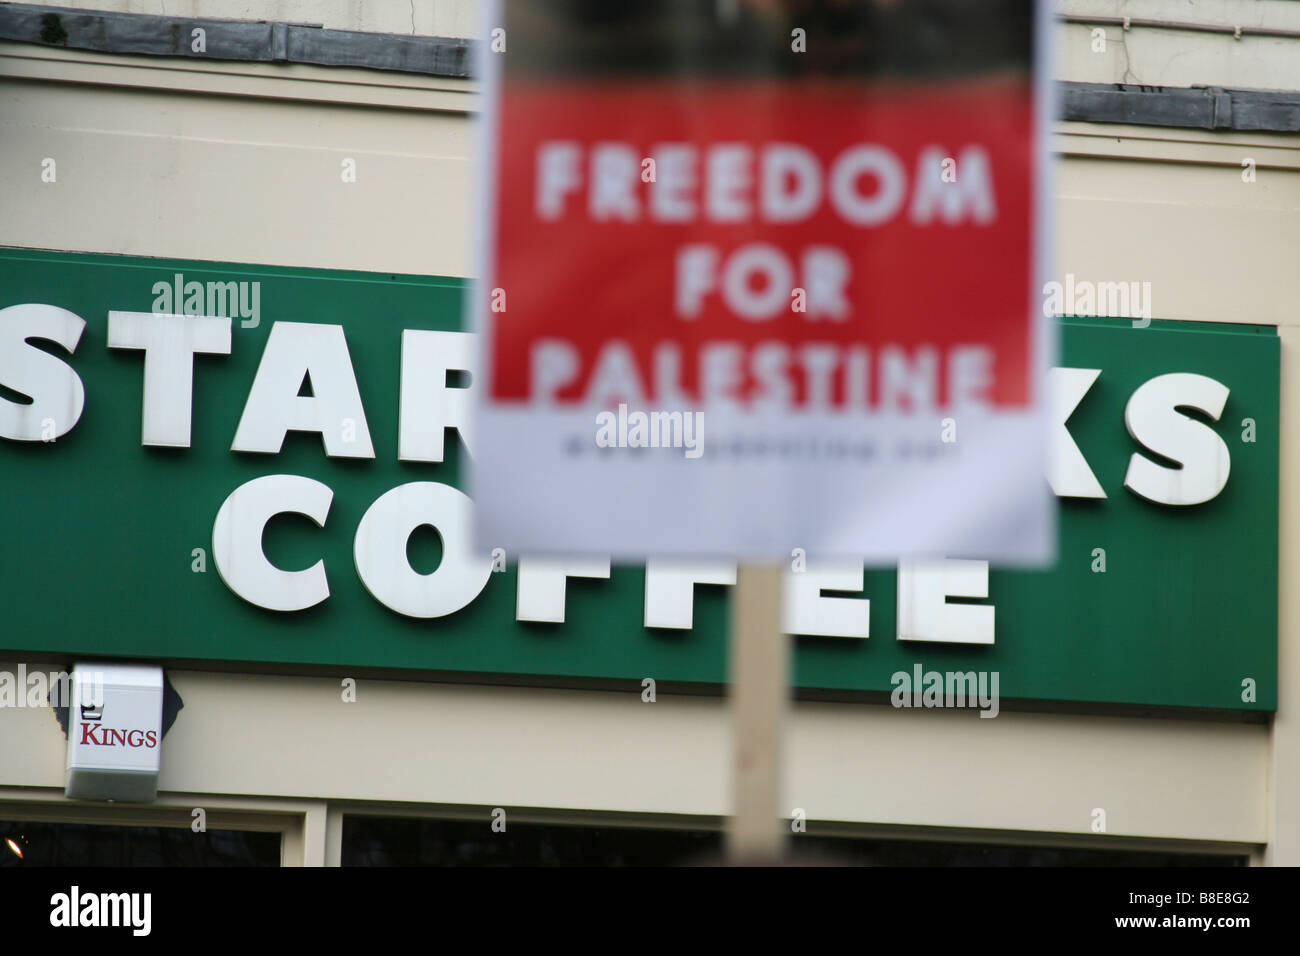 'Freedom for Palestine' banner at Free Gaza protest in Birmingham, England, UK on January 17, 2009 - Stock Image